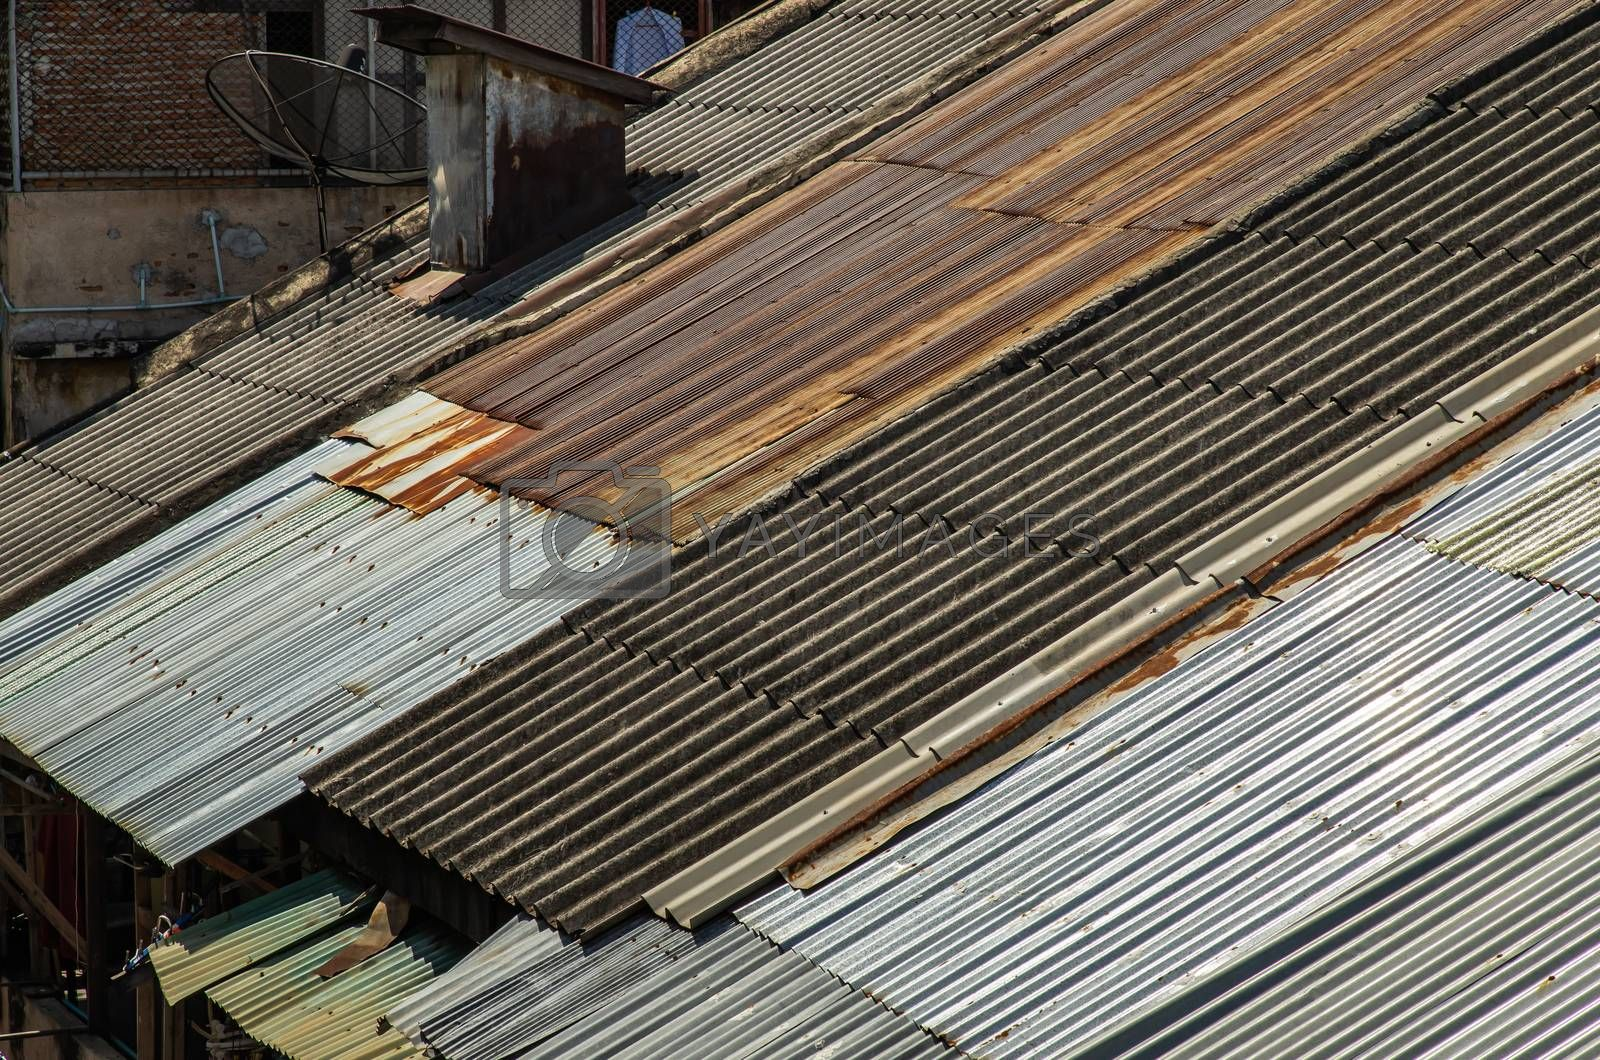 The Old galvanized roof and Old chimney roof on House, Old metal sheet roof texture, Rusty metal sheet texture. Selective focus.